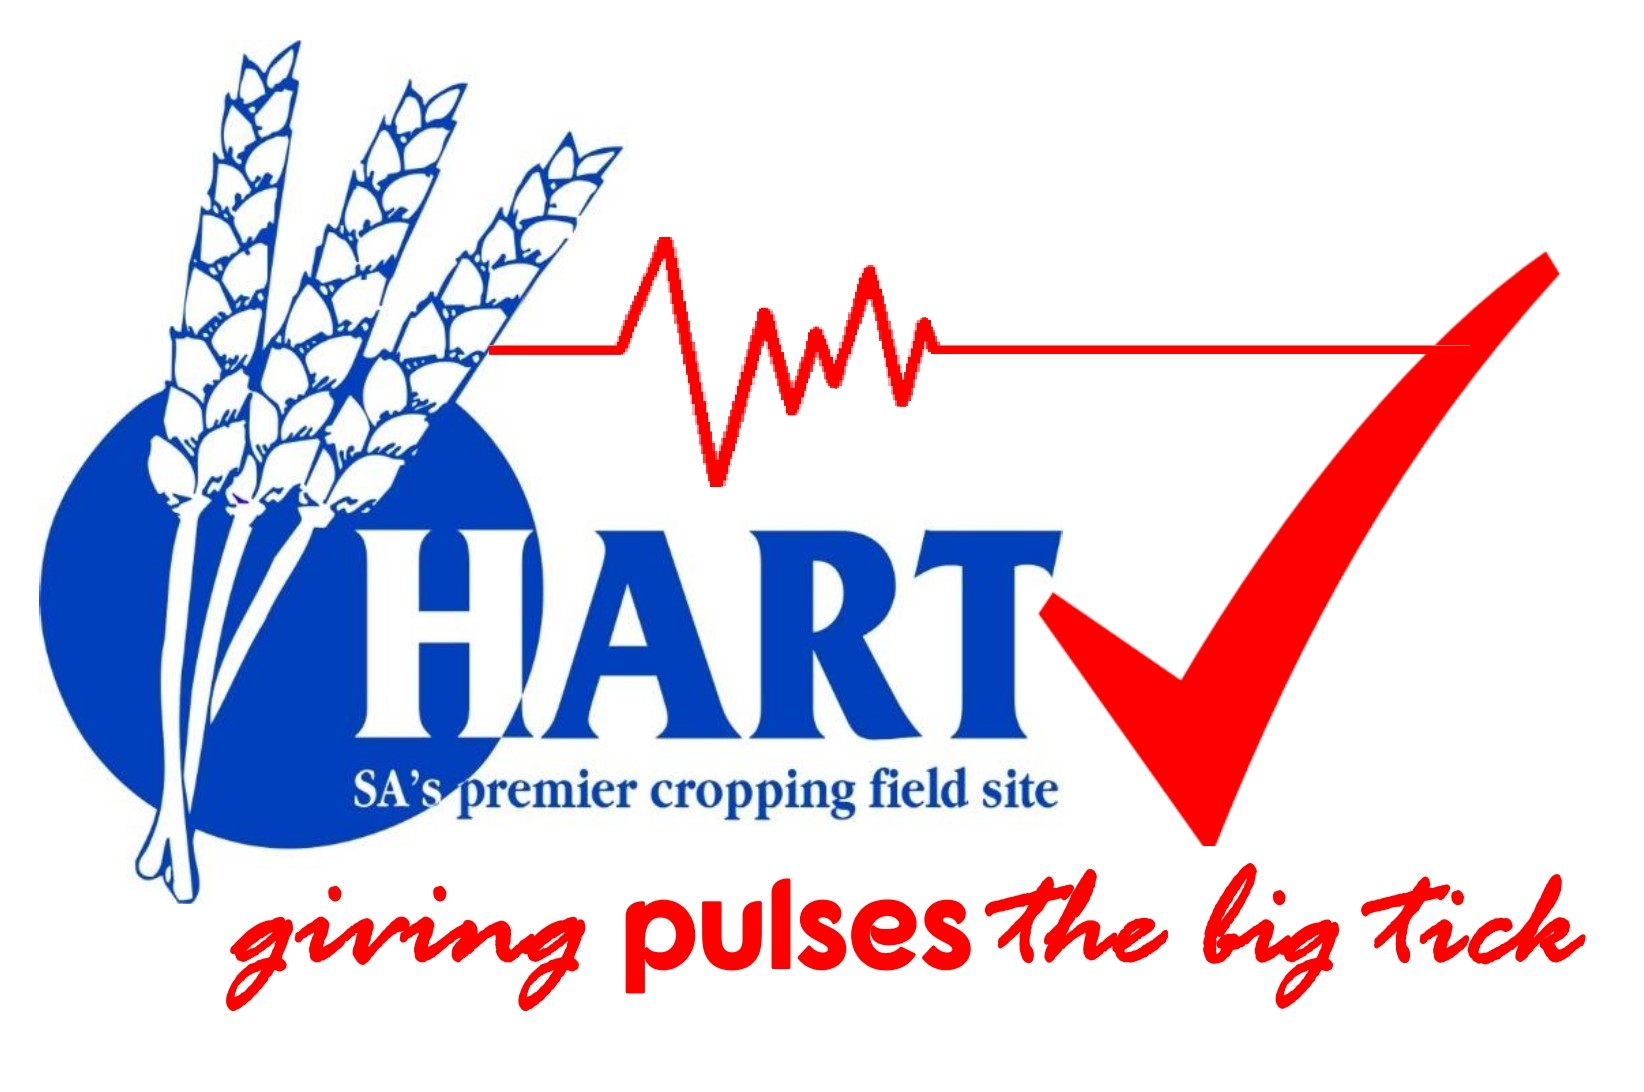 Hart, giving pulses the big tick